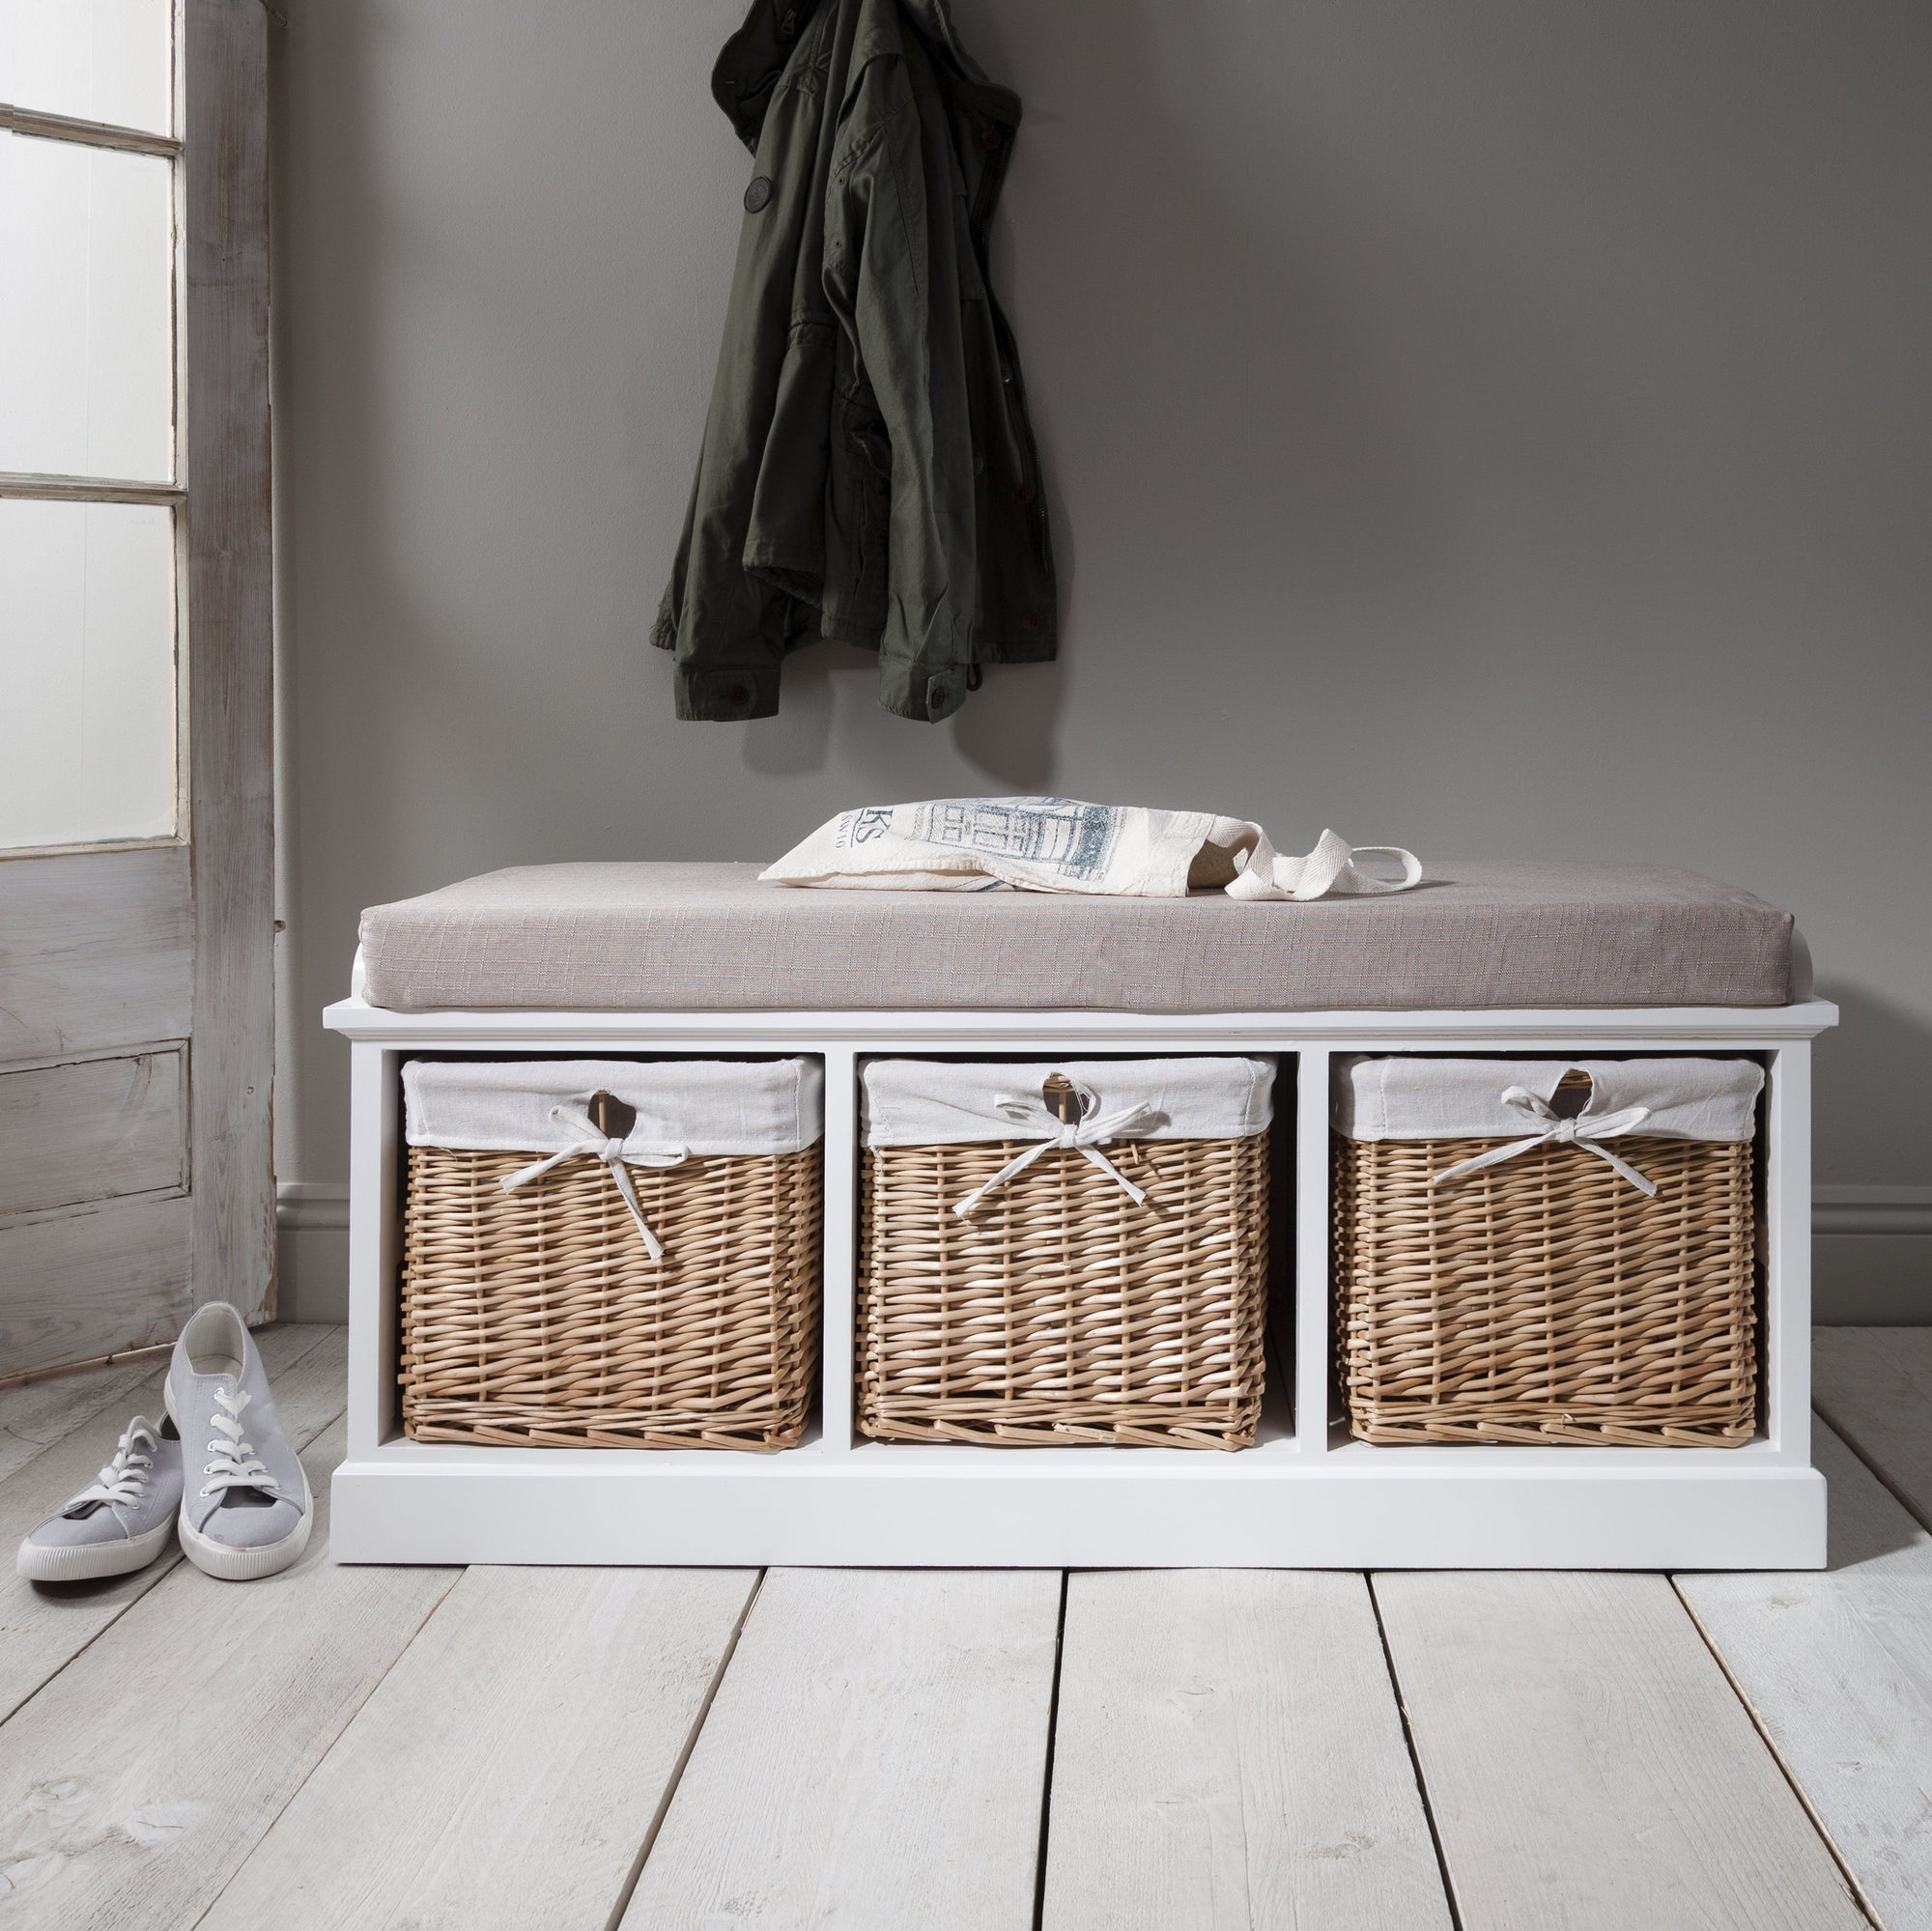 Fyfield Hallway Storage Bench in White with cushion - In Stock Date - 27th May 2020 - Laura James